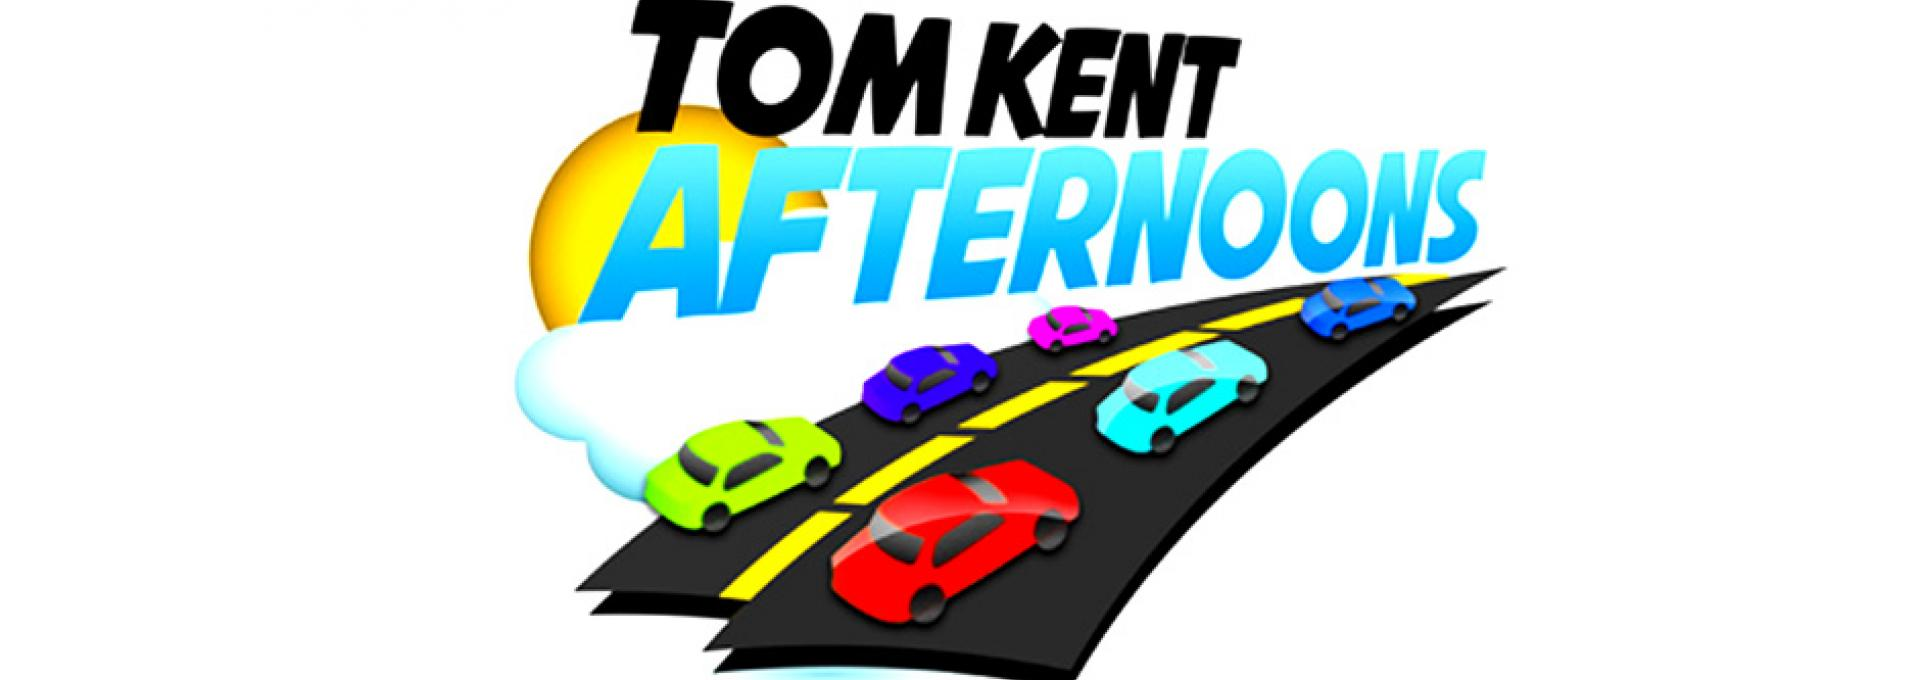 TOM KENT AFTERNOONS hero